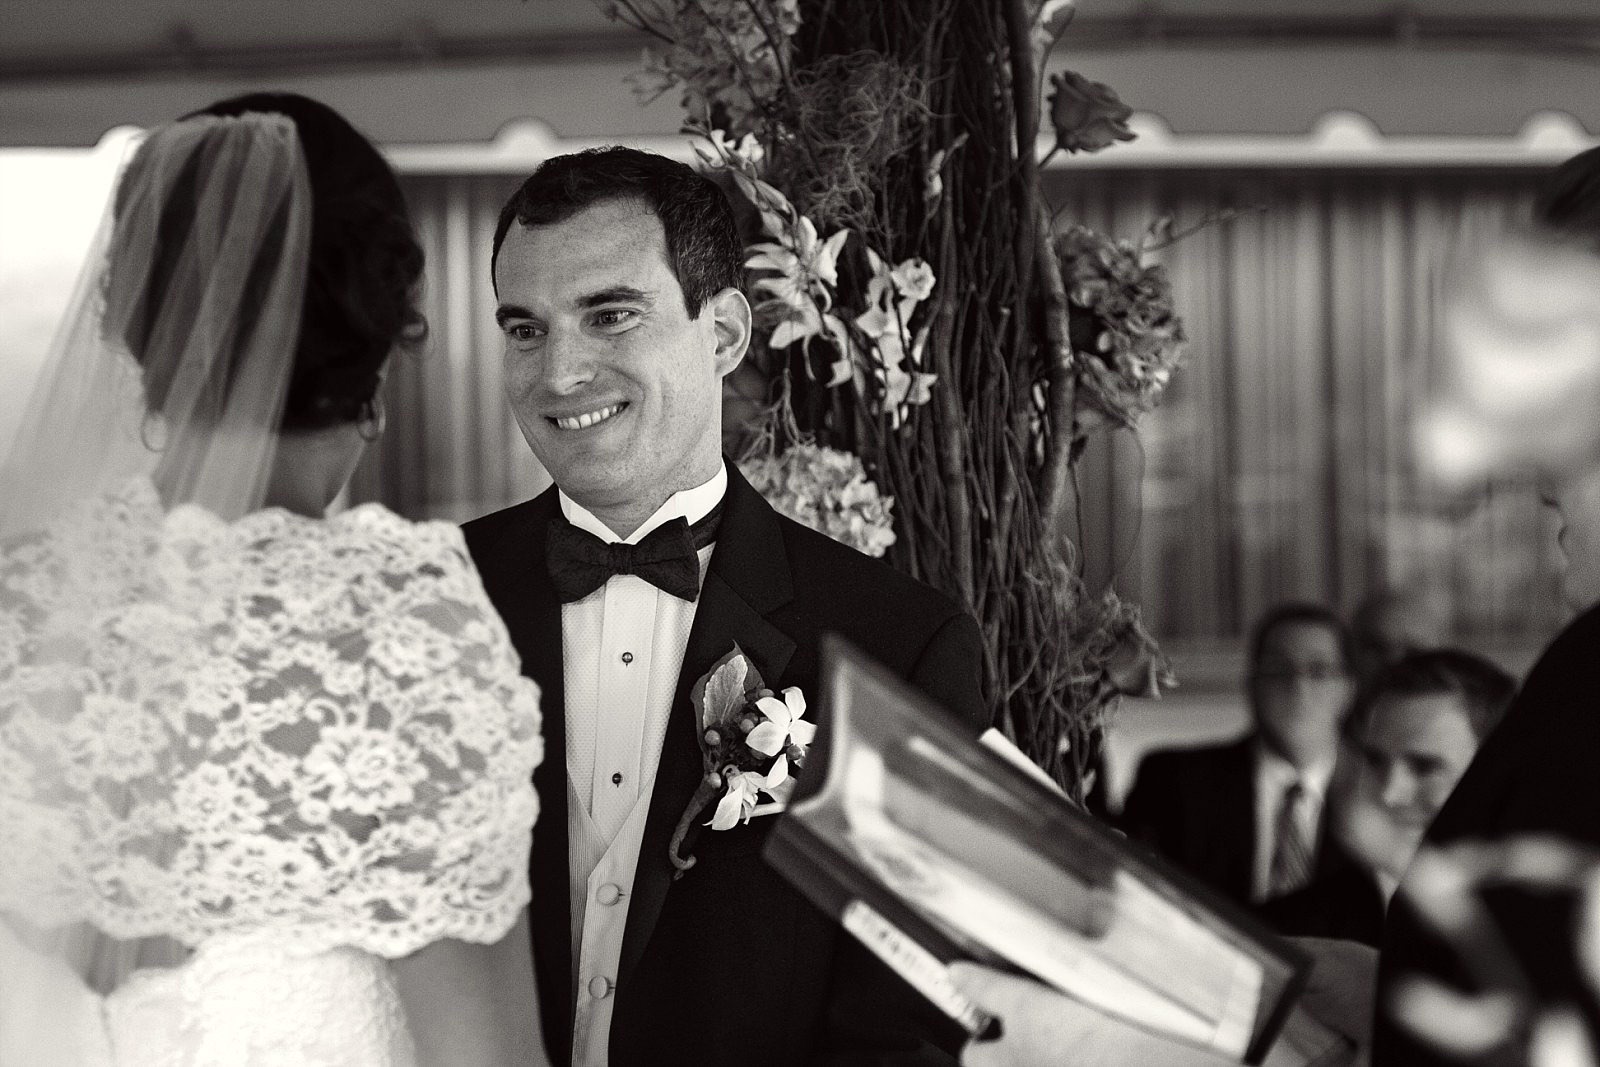 NY_Wedding_Photographer_KaJo_35.jpg